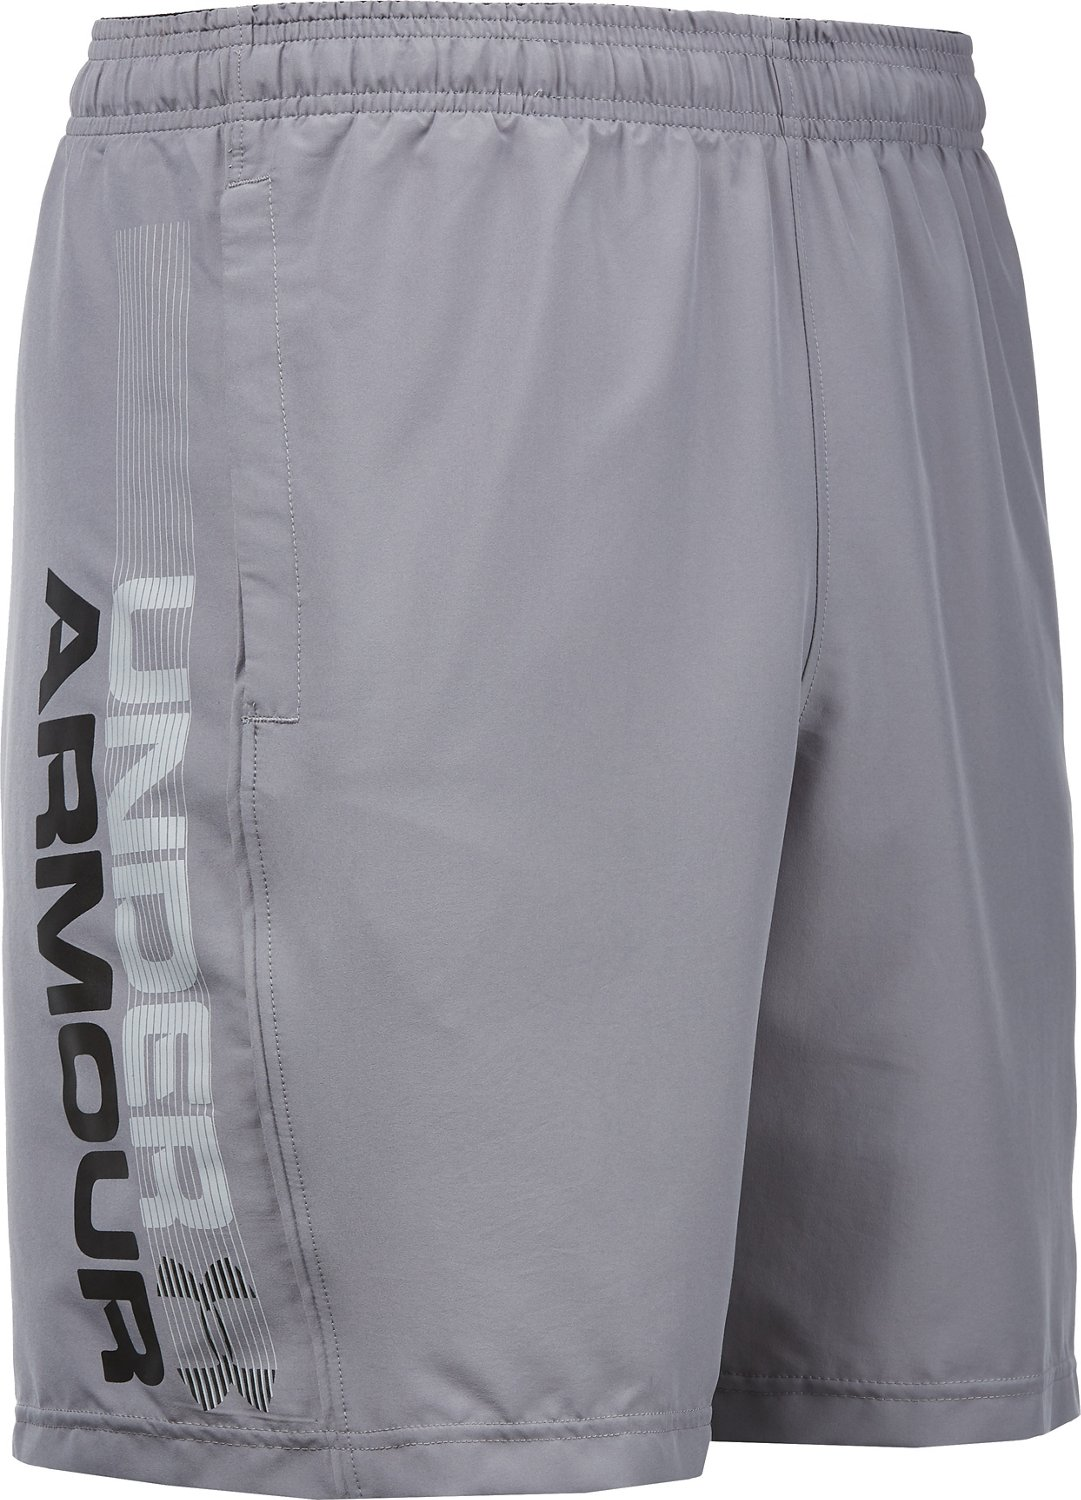 dac9bdaf2bb Display product reviews for Under Armour Men's Woven Graphic Shorts